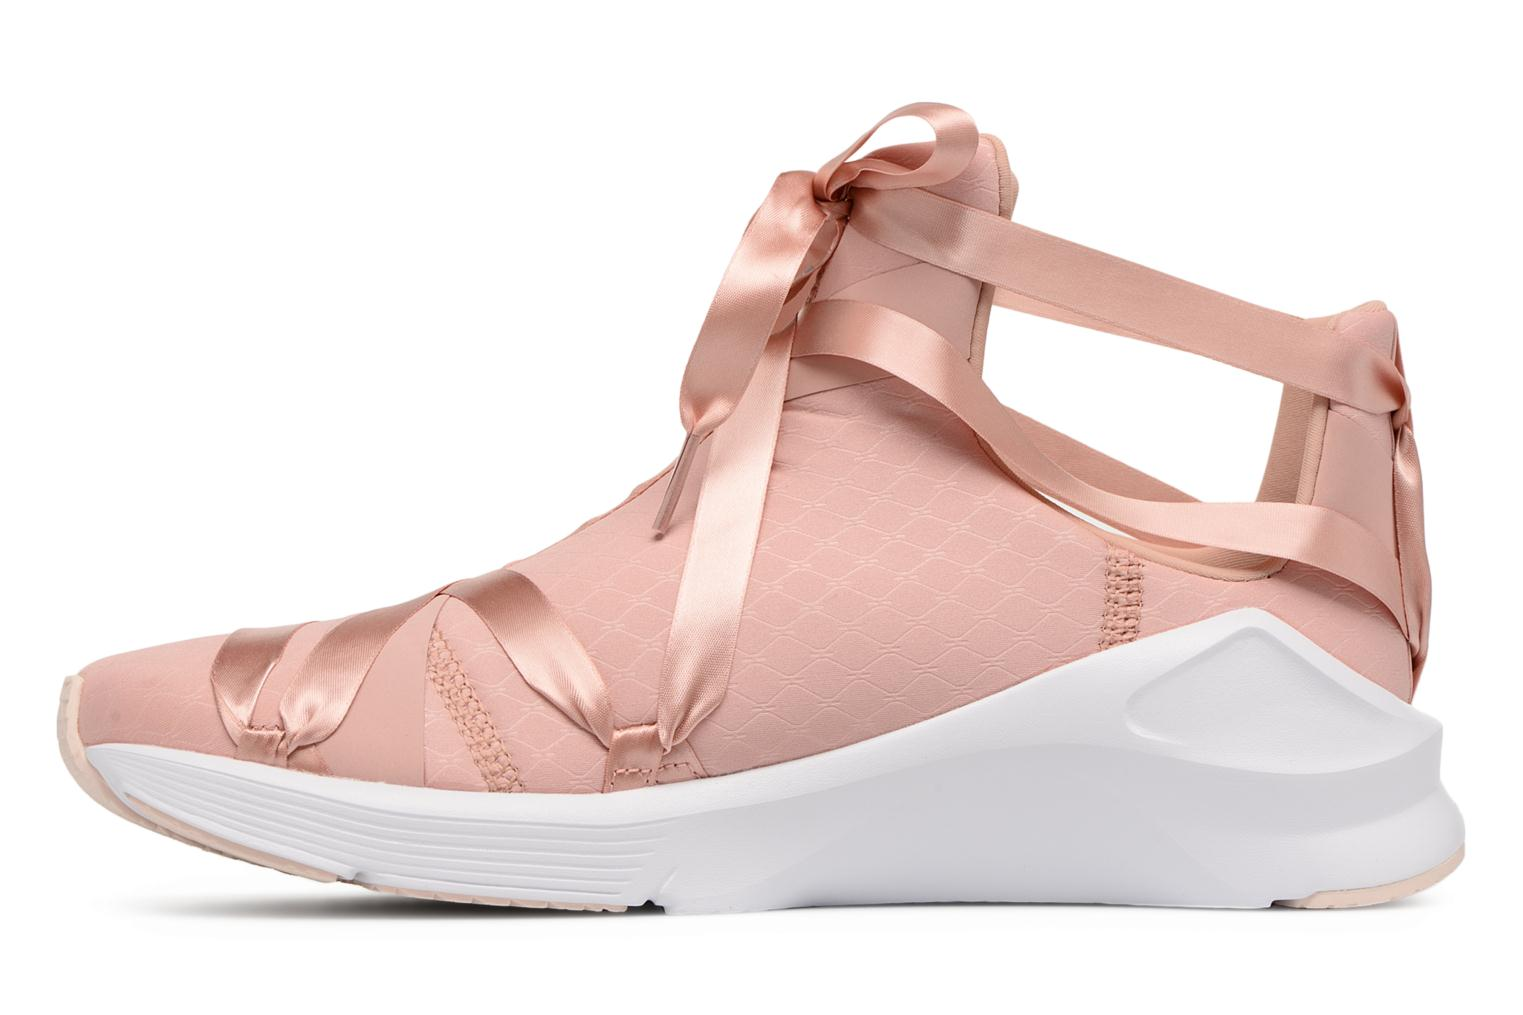 Chaussures de sport Puma Fierce Rope Satin EP Wn's Rose vue face